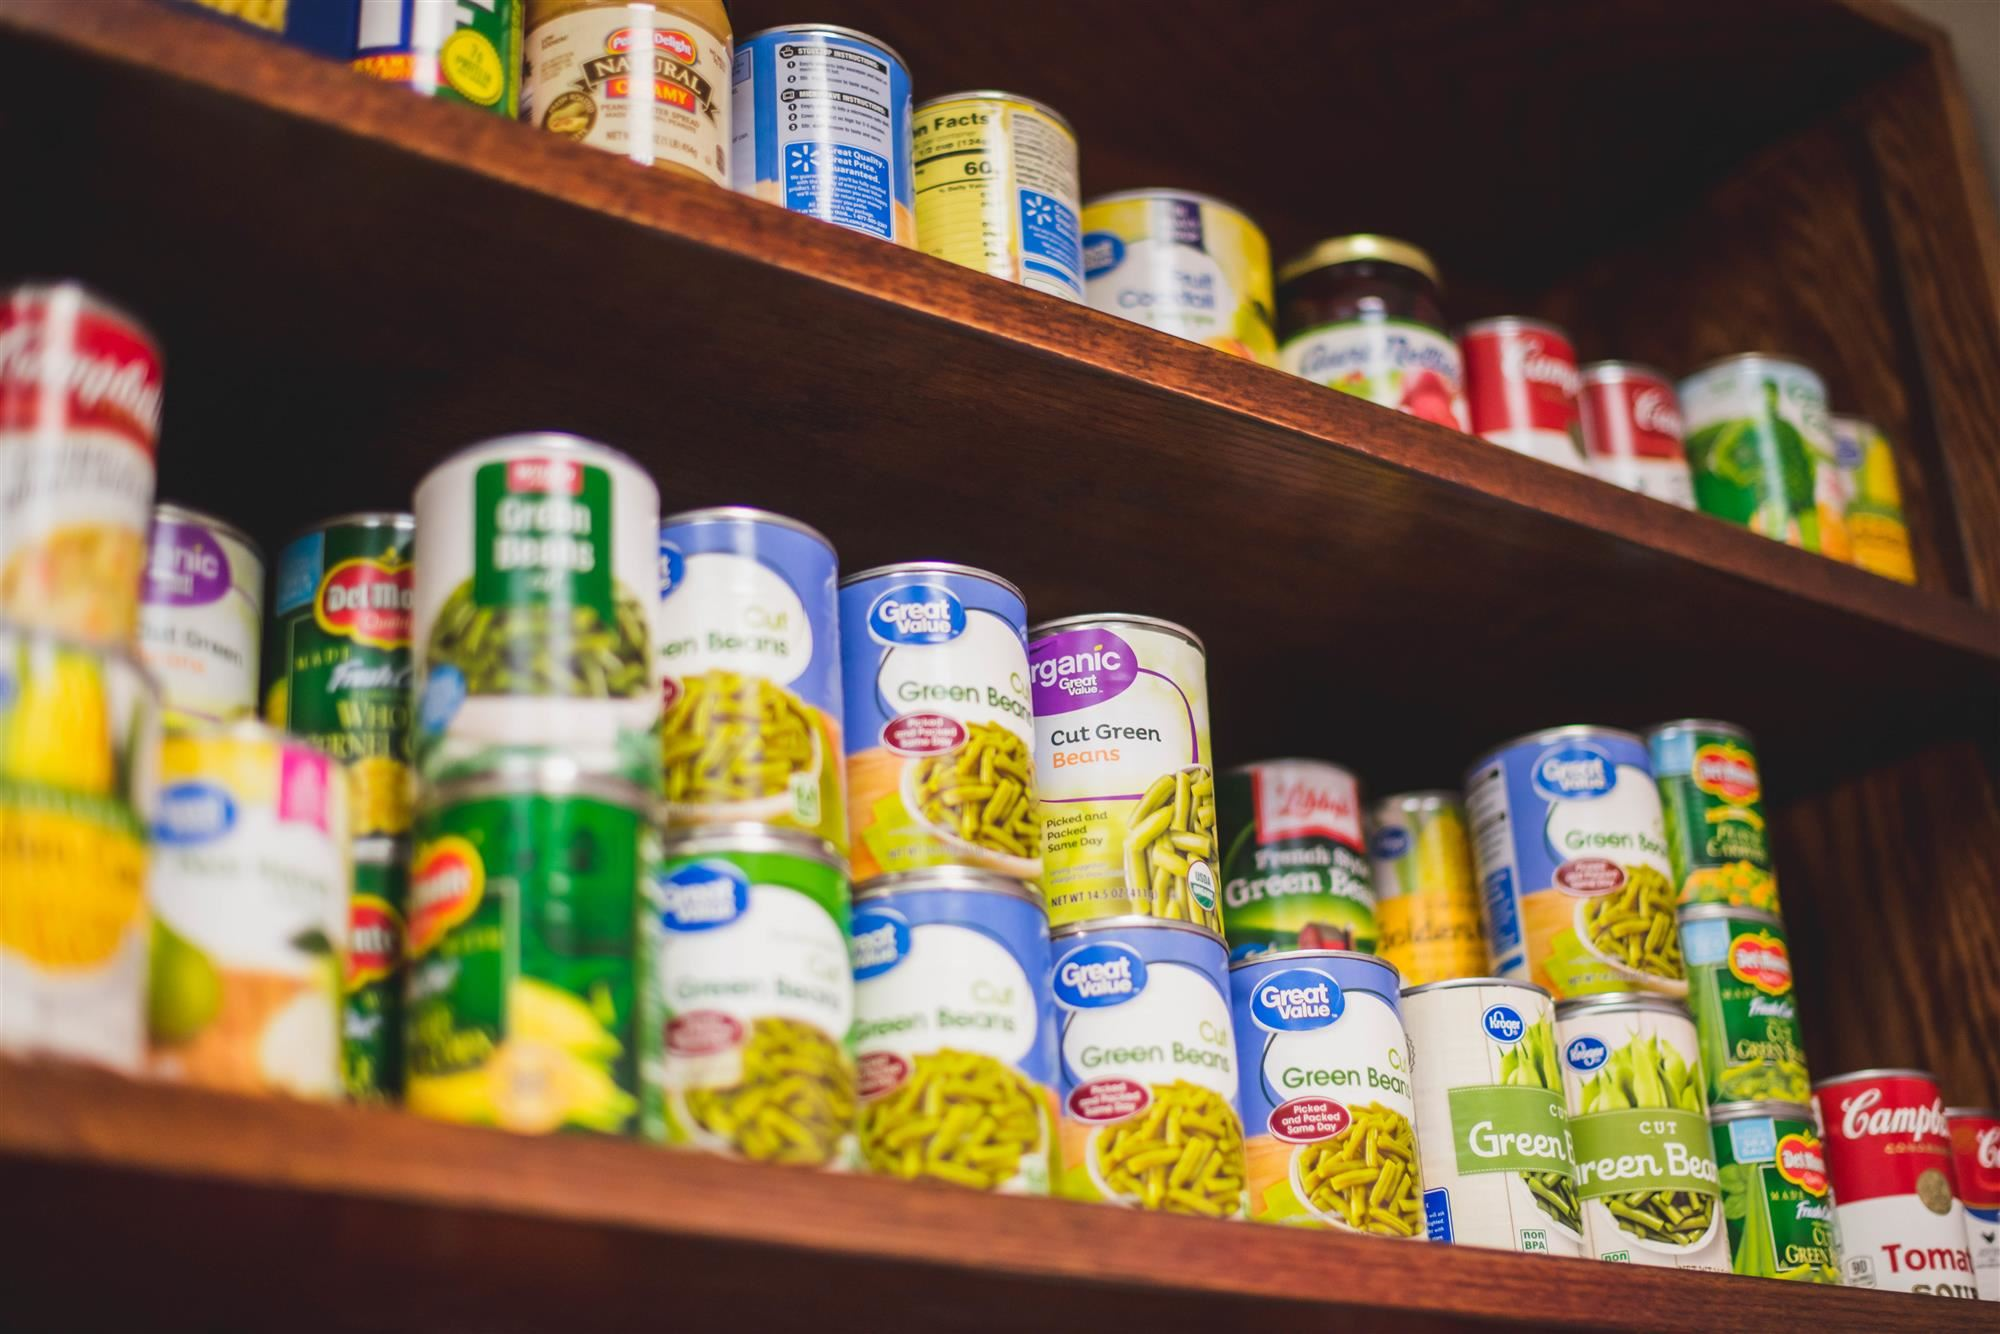 Canned foods on snack pantry shelf